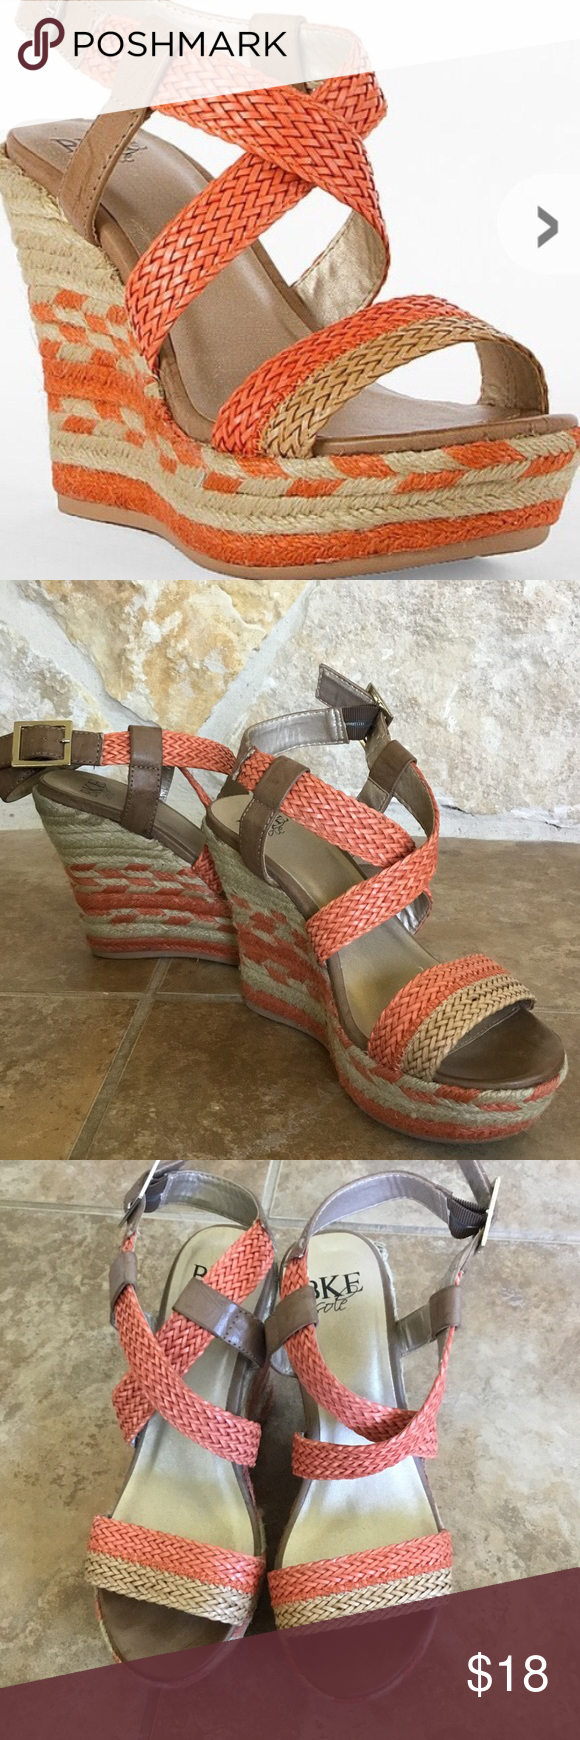 BKE Sole Wedges Preloved Orange striped Wedges.  Visible signs of wear on back heels and soles. Soles still in great condition with a lot of life still left in them. Boho chic! Festival ready! BKE Shoes Wedges